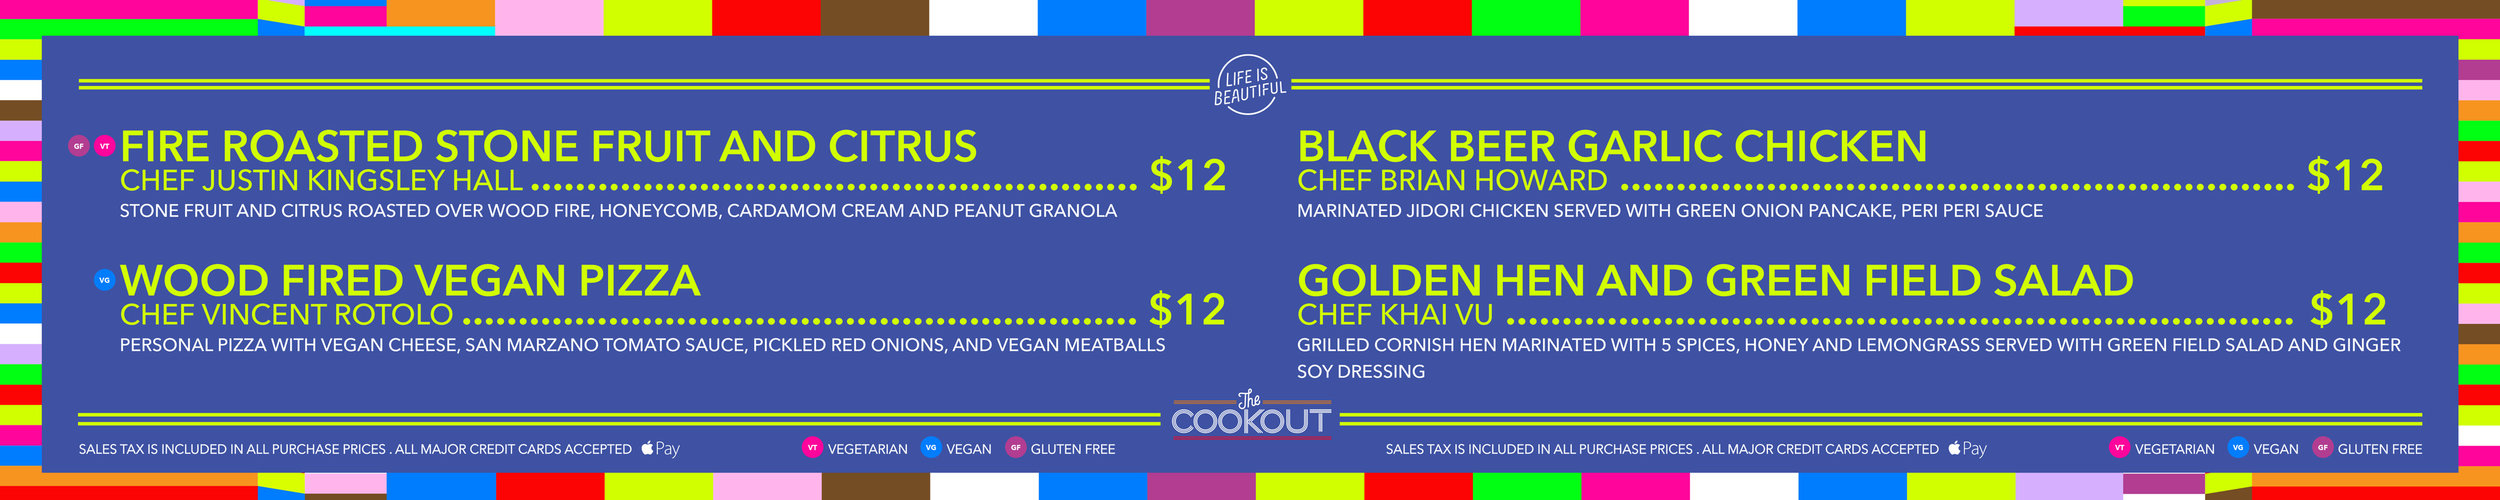 Culinary Signage for The Cookout GA Activations: Menu